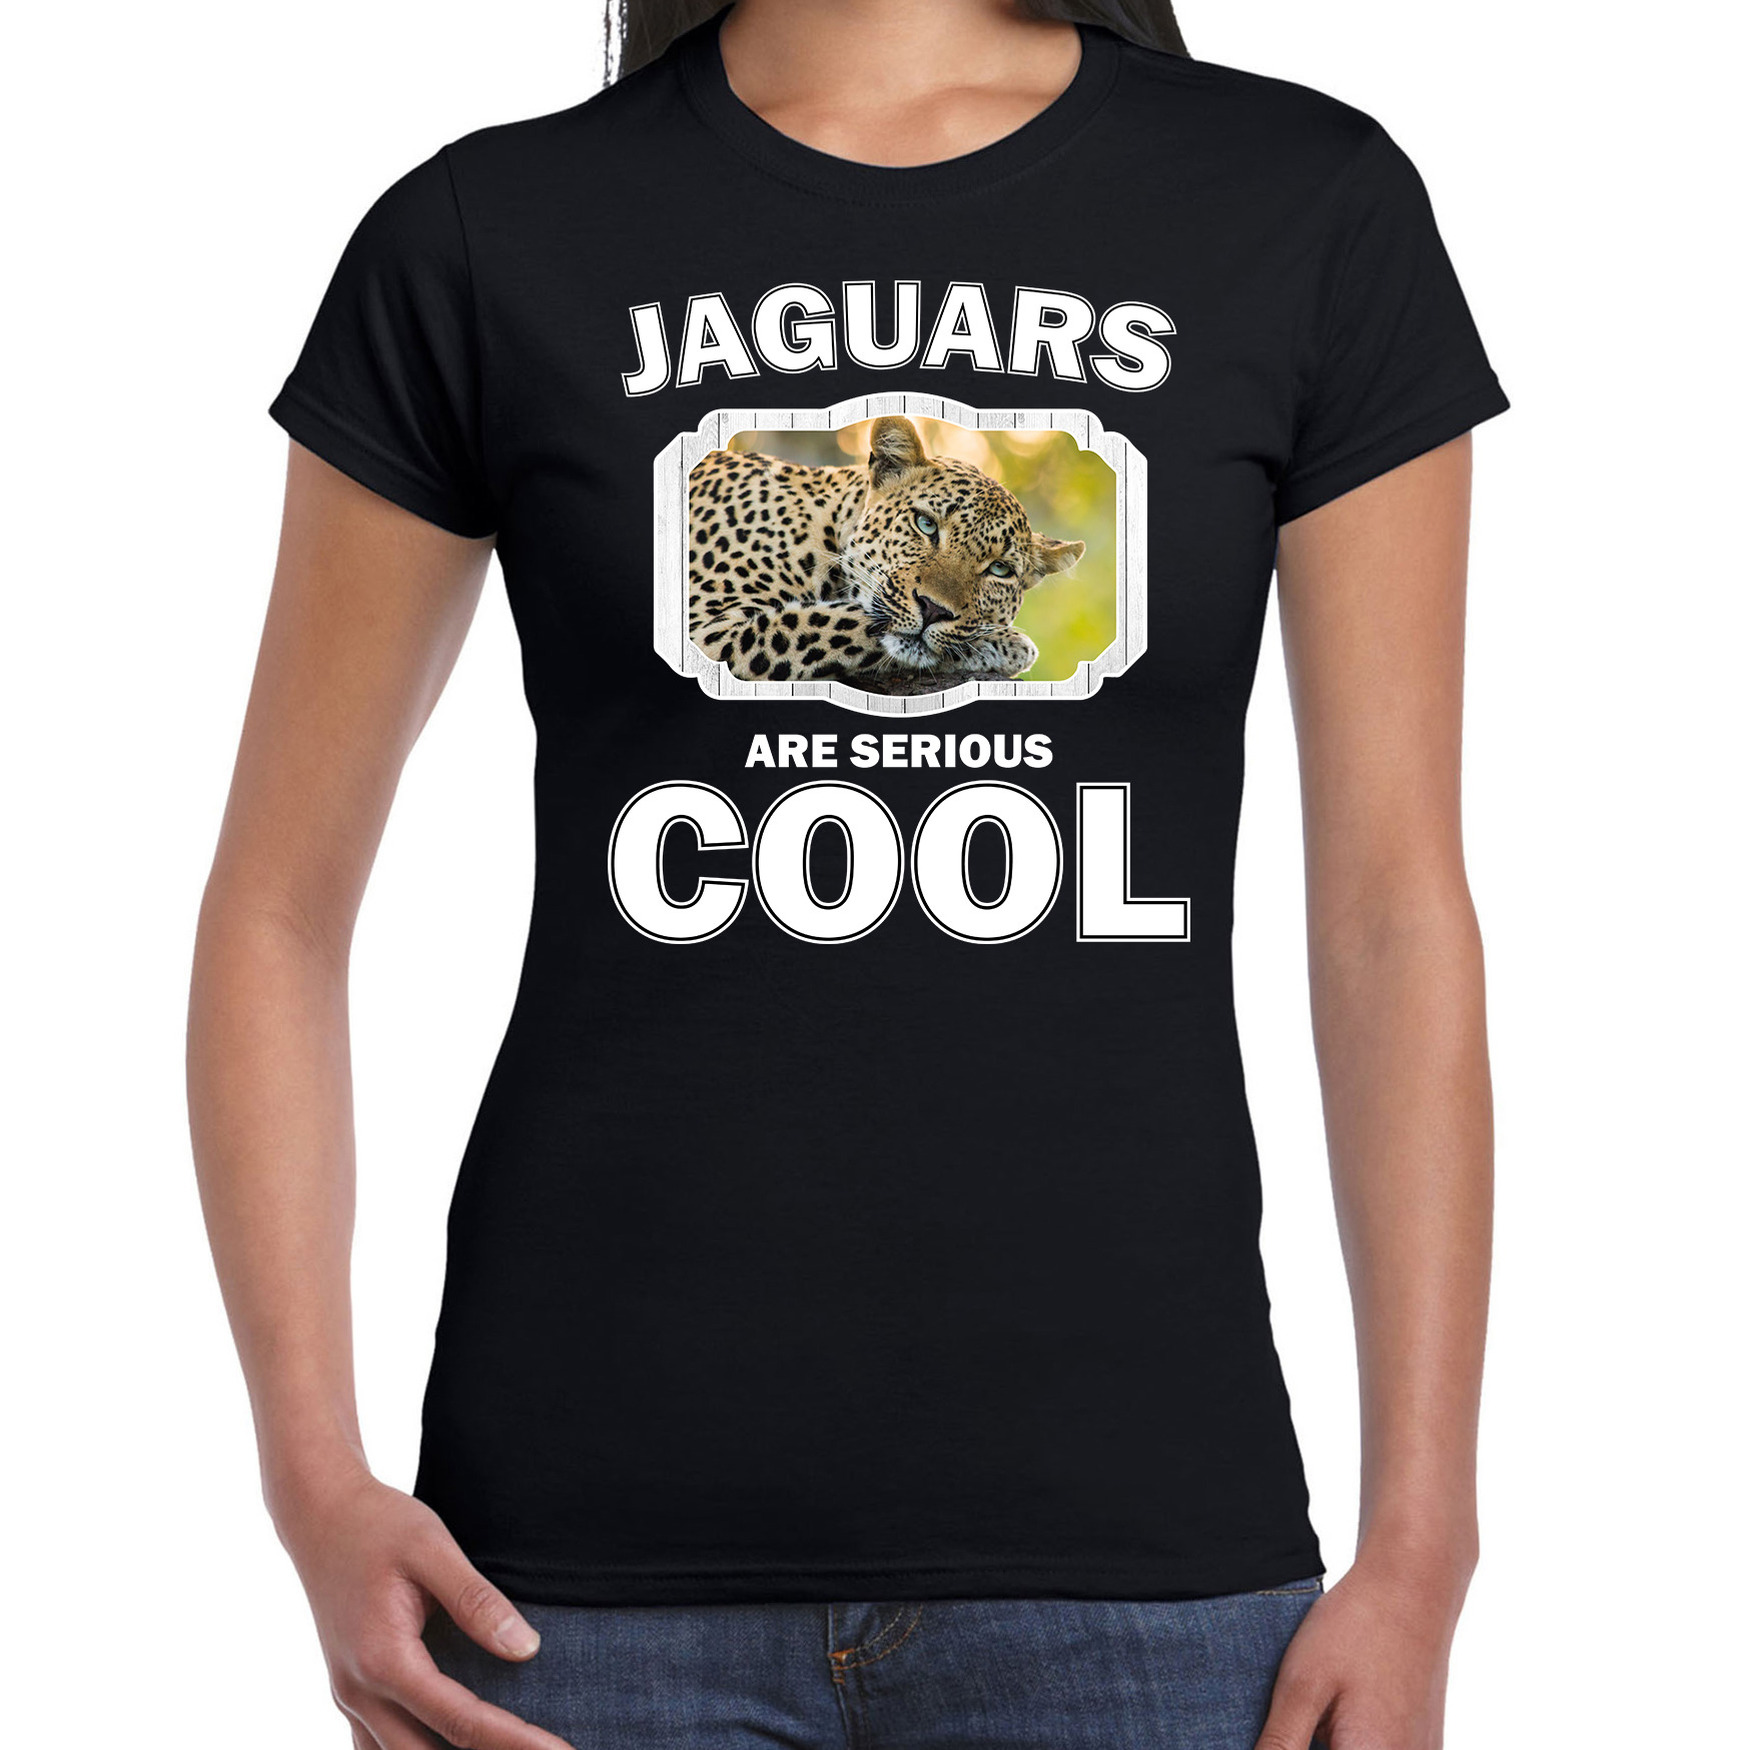 T-shirt jaguars are serious cool zwart dames - jaguars/ luipaarden/ luipaard shirt